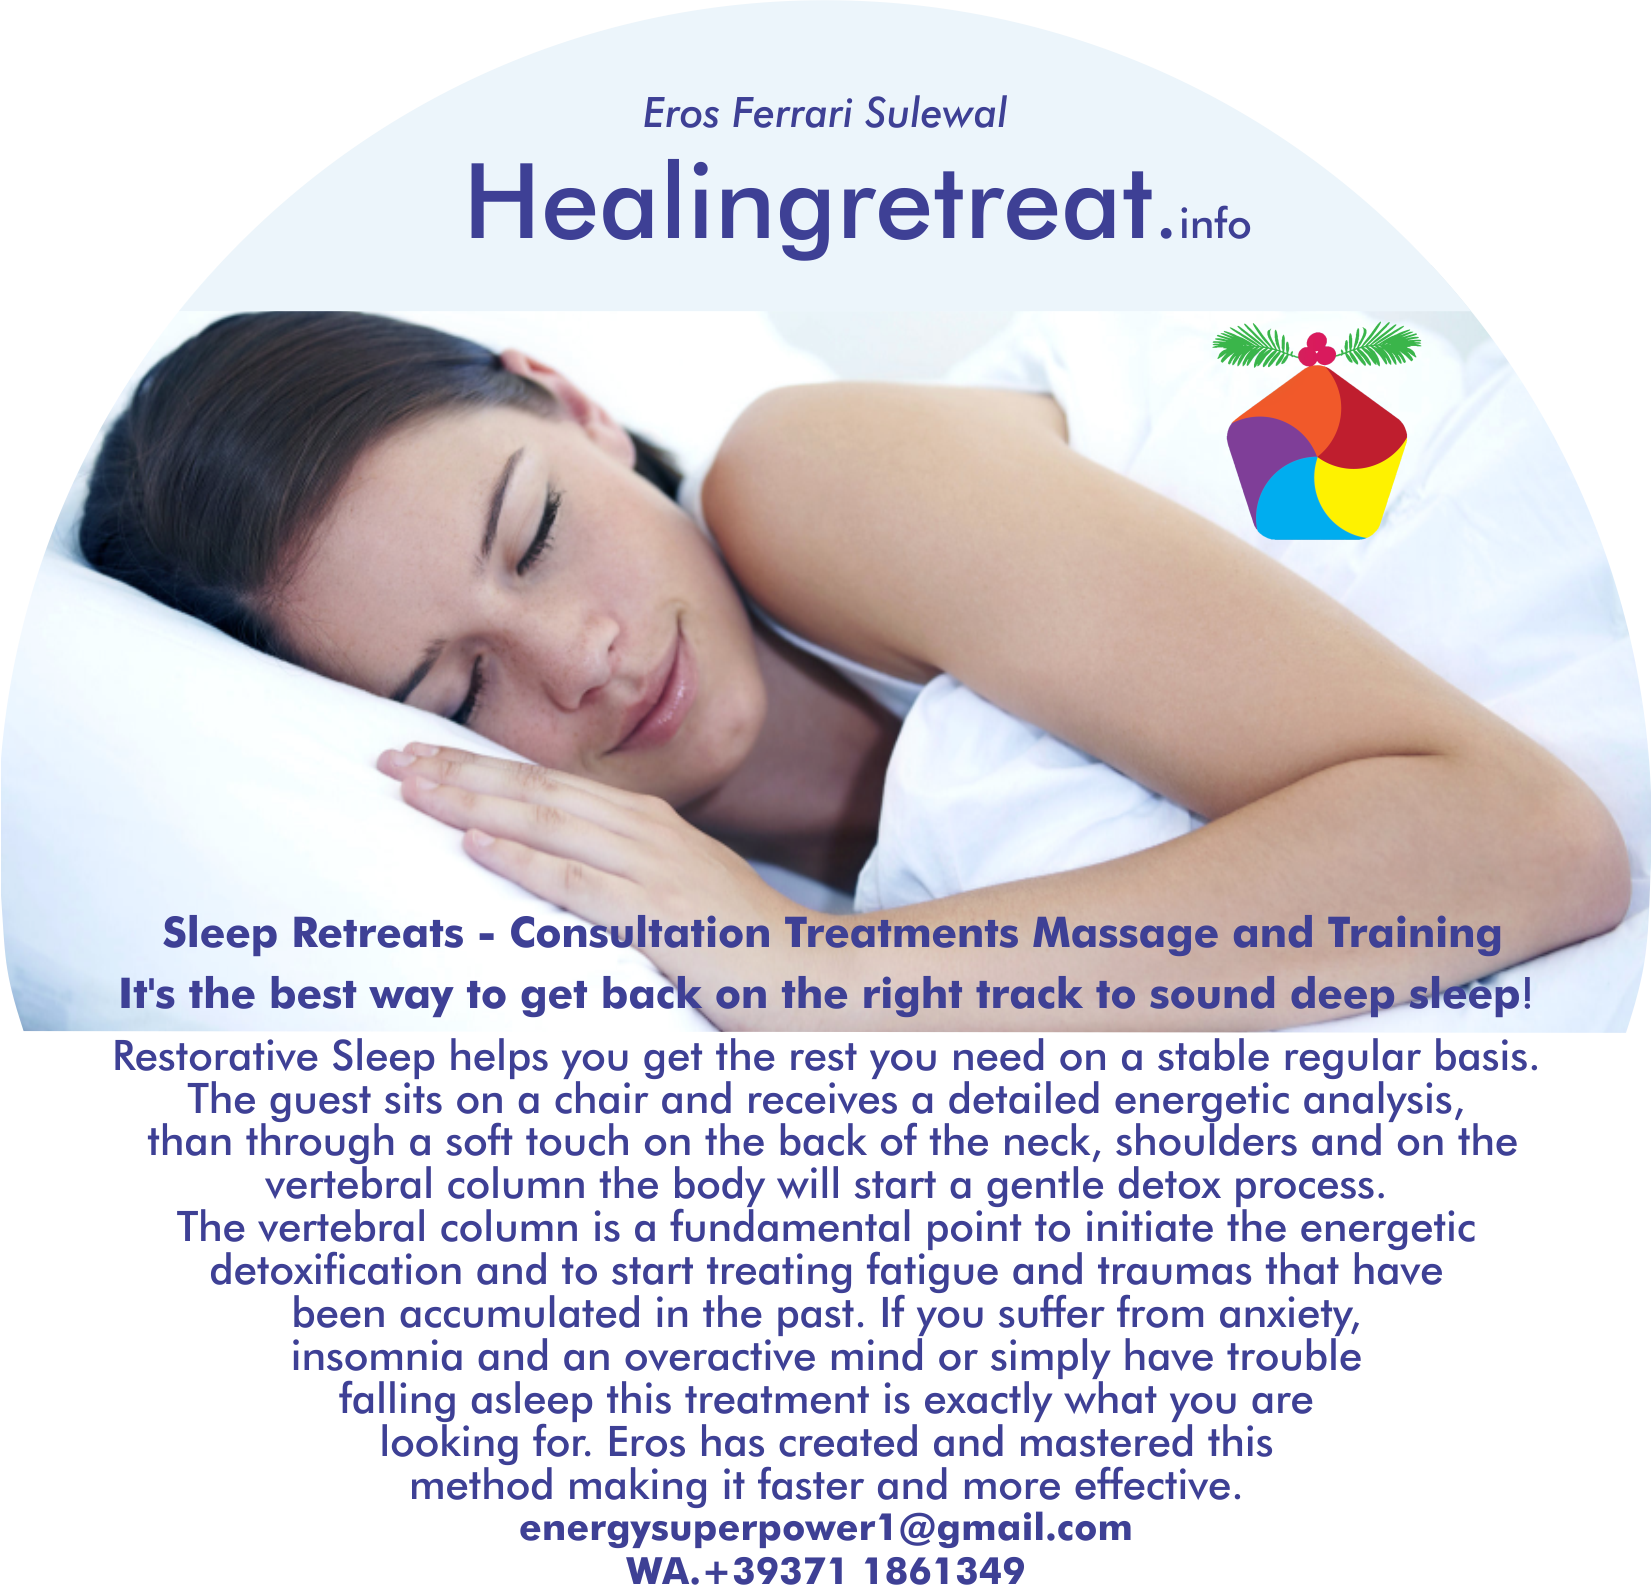 3 NIGHTS RETREAT FOR DEEP SLEEP THERAPY